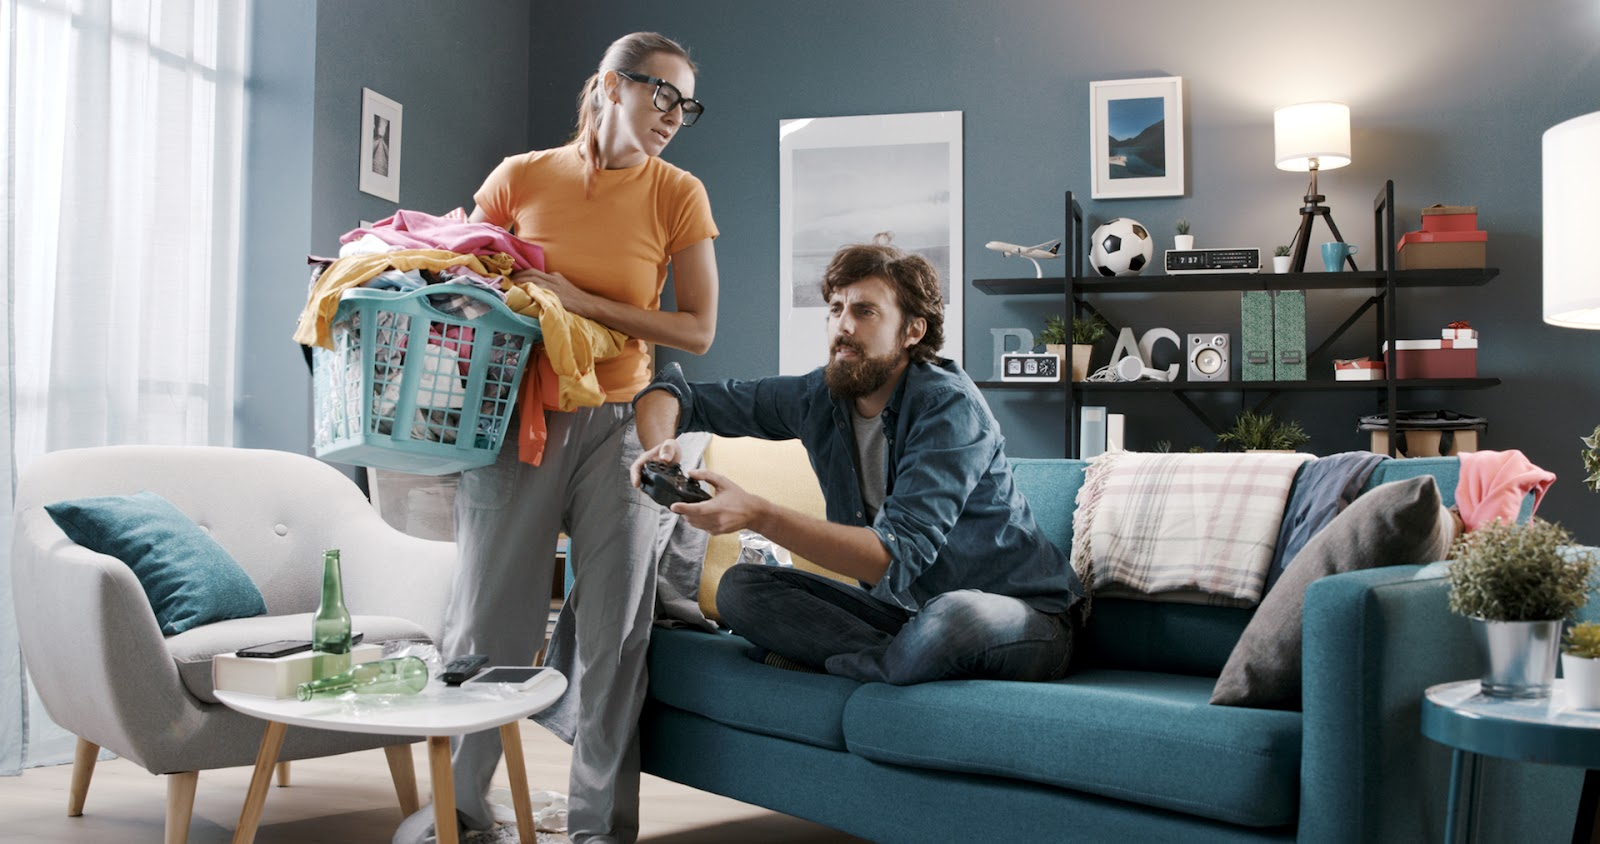 Frustrated woman doing laundry while her husband plays video games